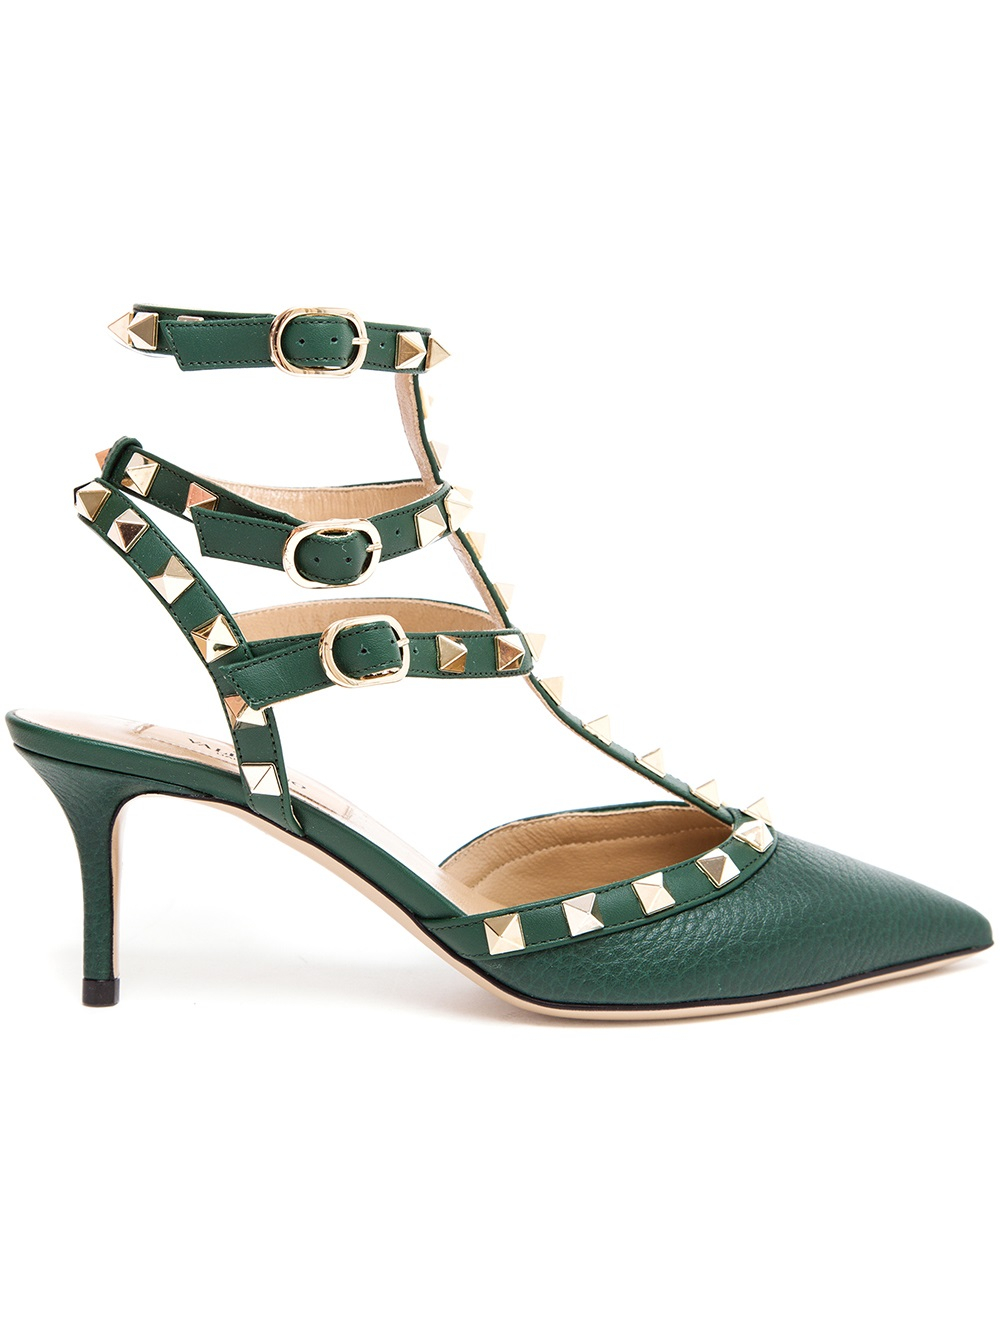 valentino rockstud leather kitten heels in green lyst. Black Bedroom Furniture Sets. Home Design Ideas